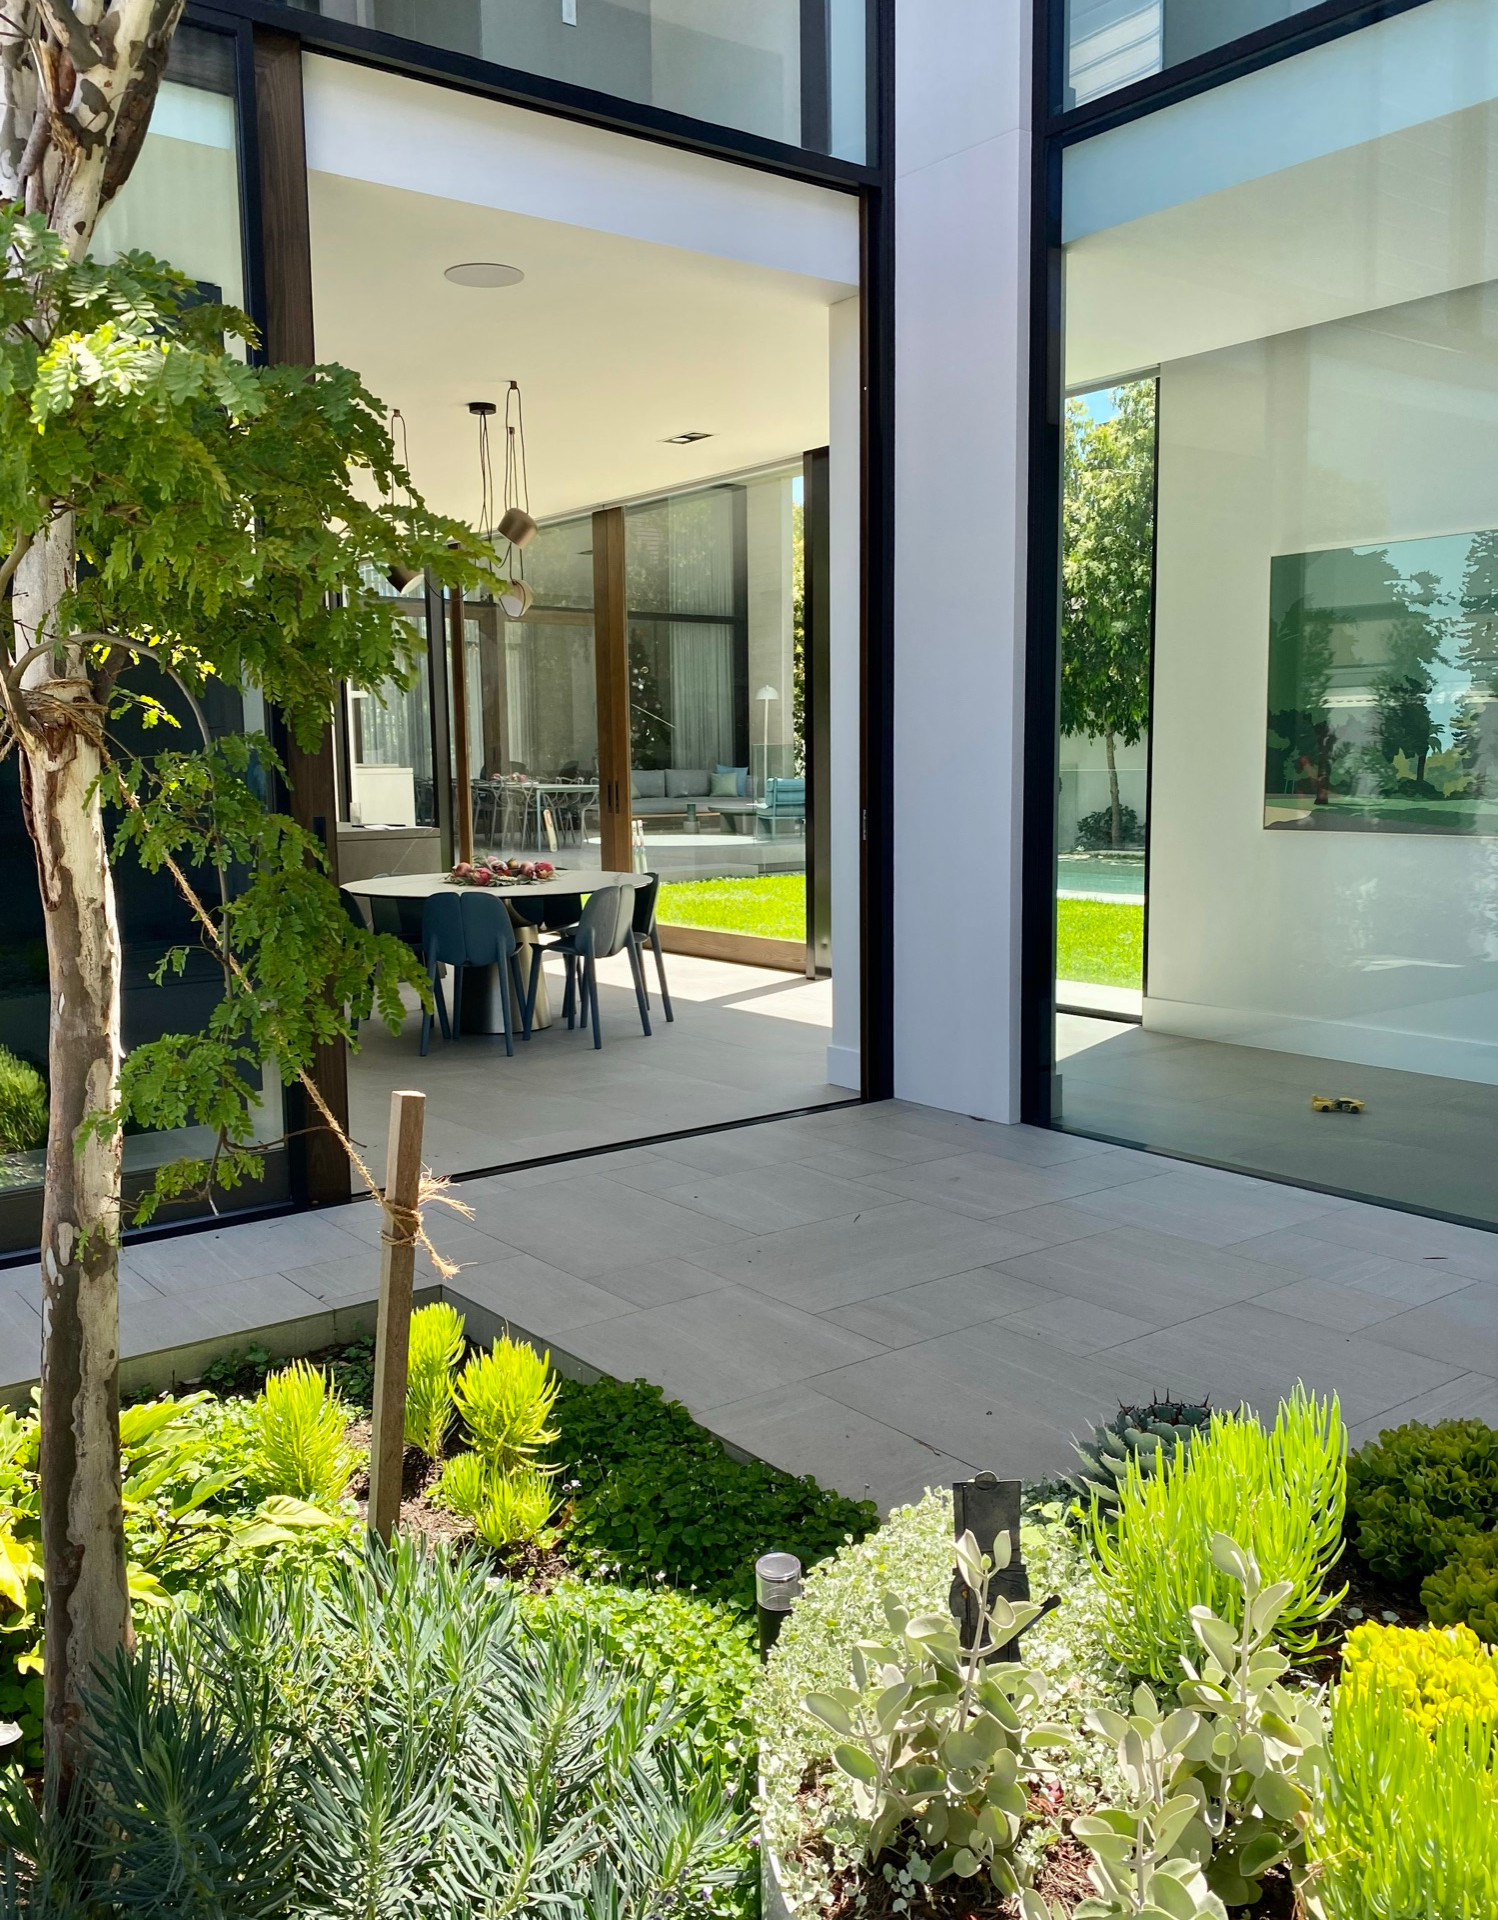 Designer Best landscaper Dalkeith, Perth landscaping by tristanpeirce Landscape Architecture Pool and Garden Design